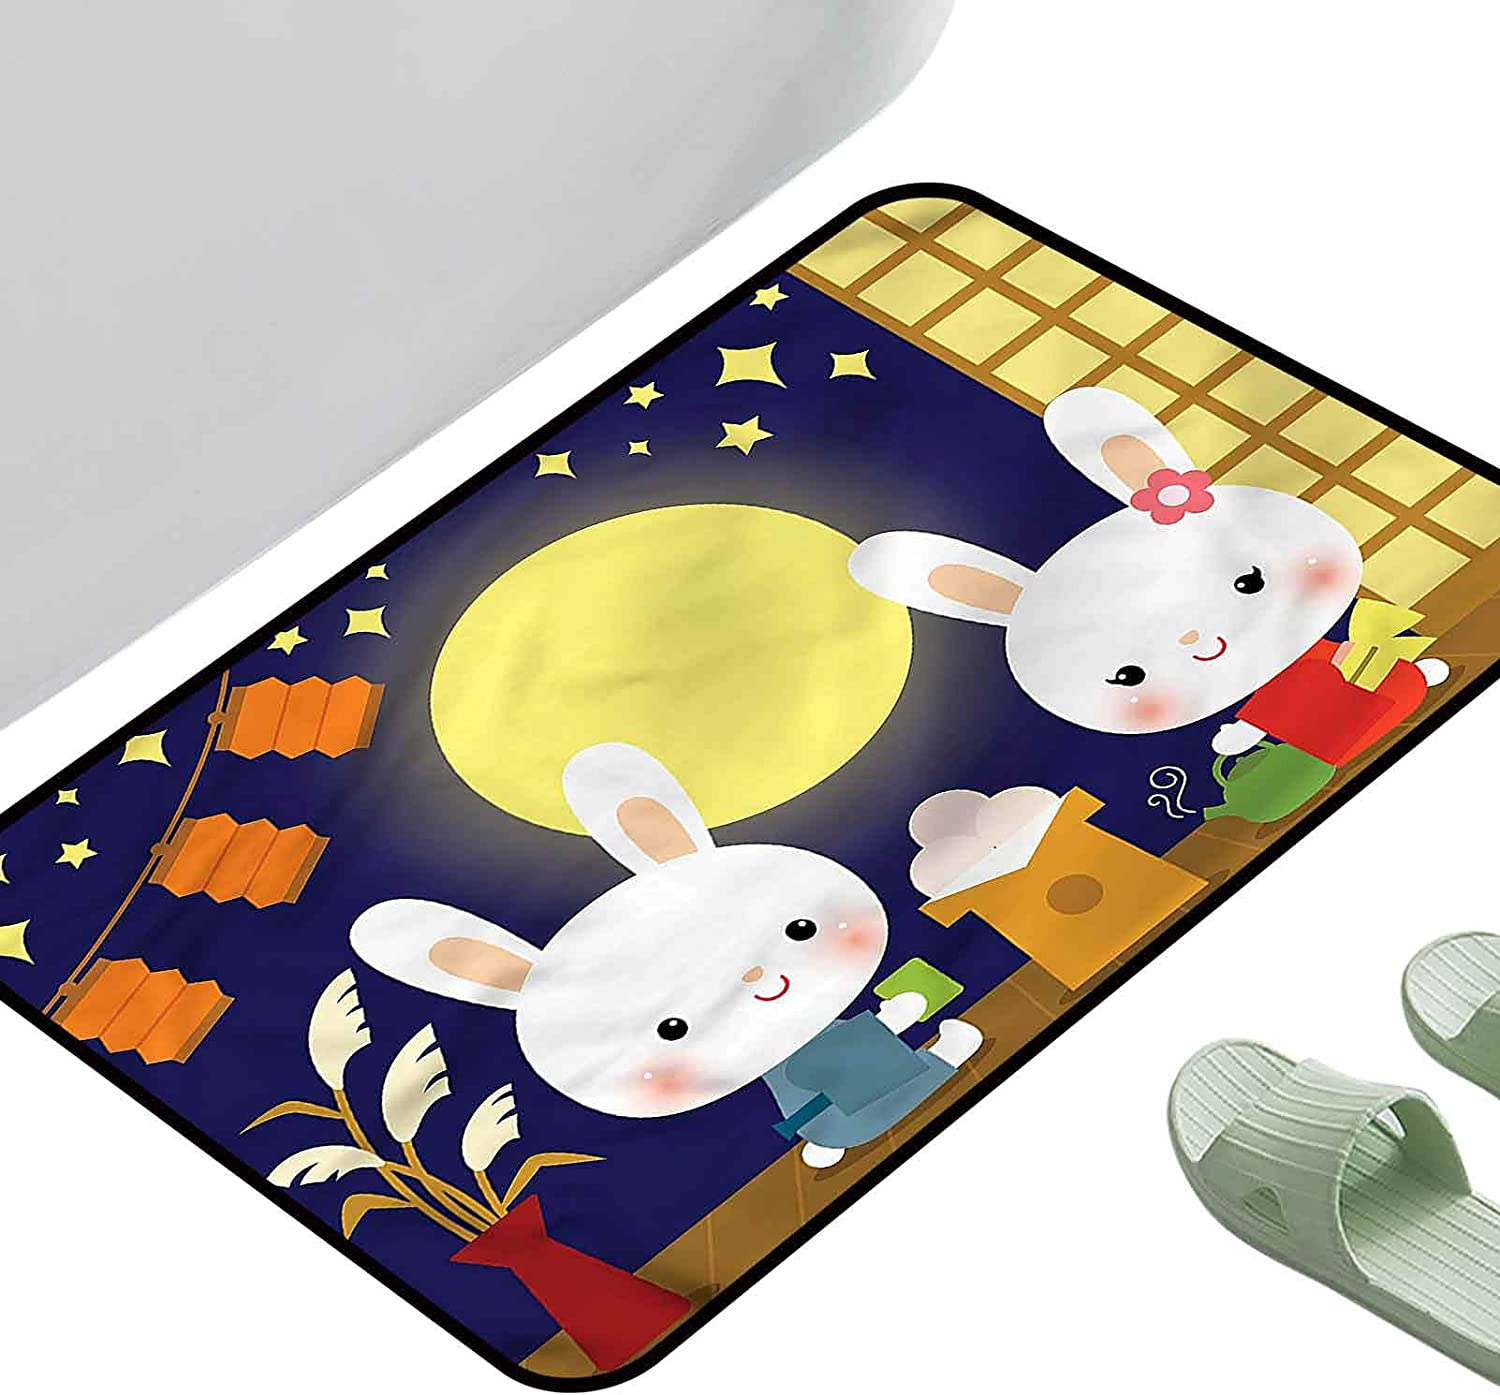 Thin Non-Slip Kitchen Now on sale Selling and selling Bathroom Carpet Tsukimi Fes Anime Colorful